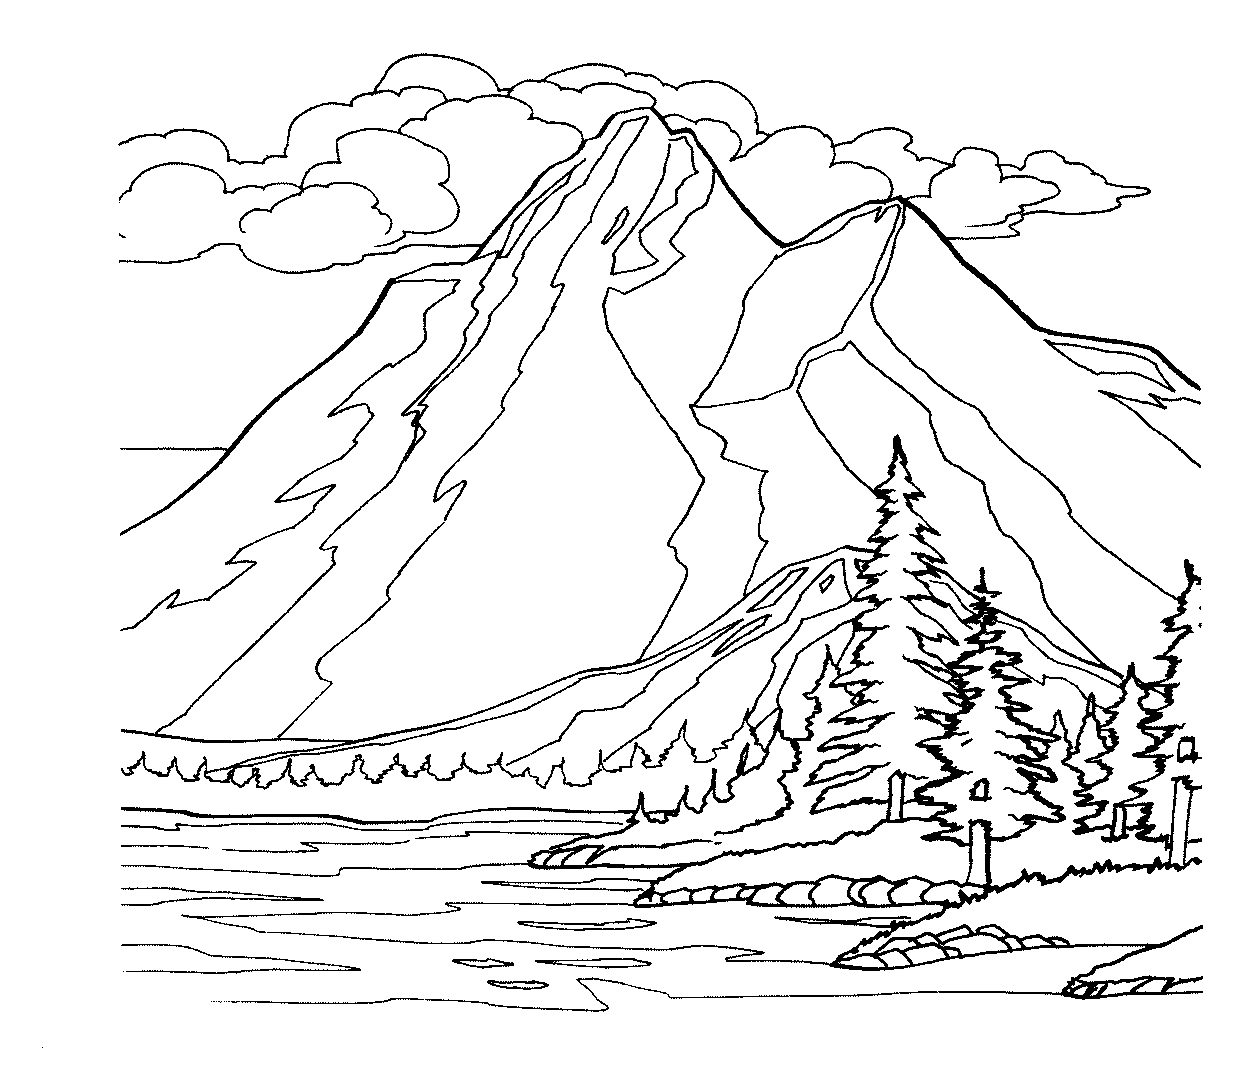 Mountain Scene Drawing at GetDrawings.com | Free for personal use ...